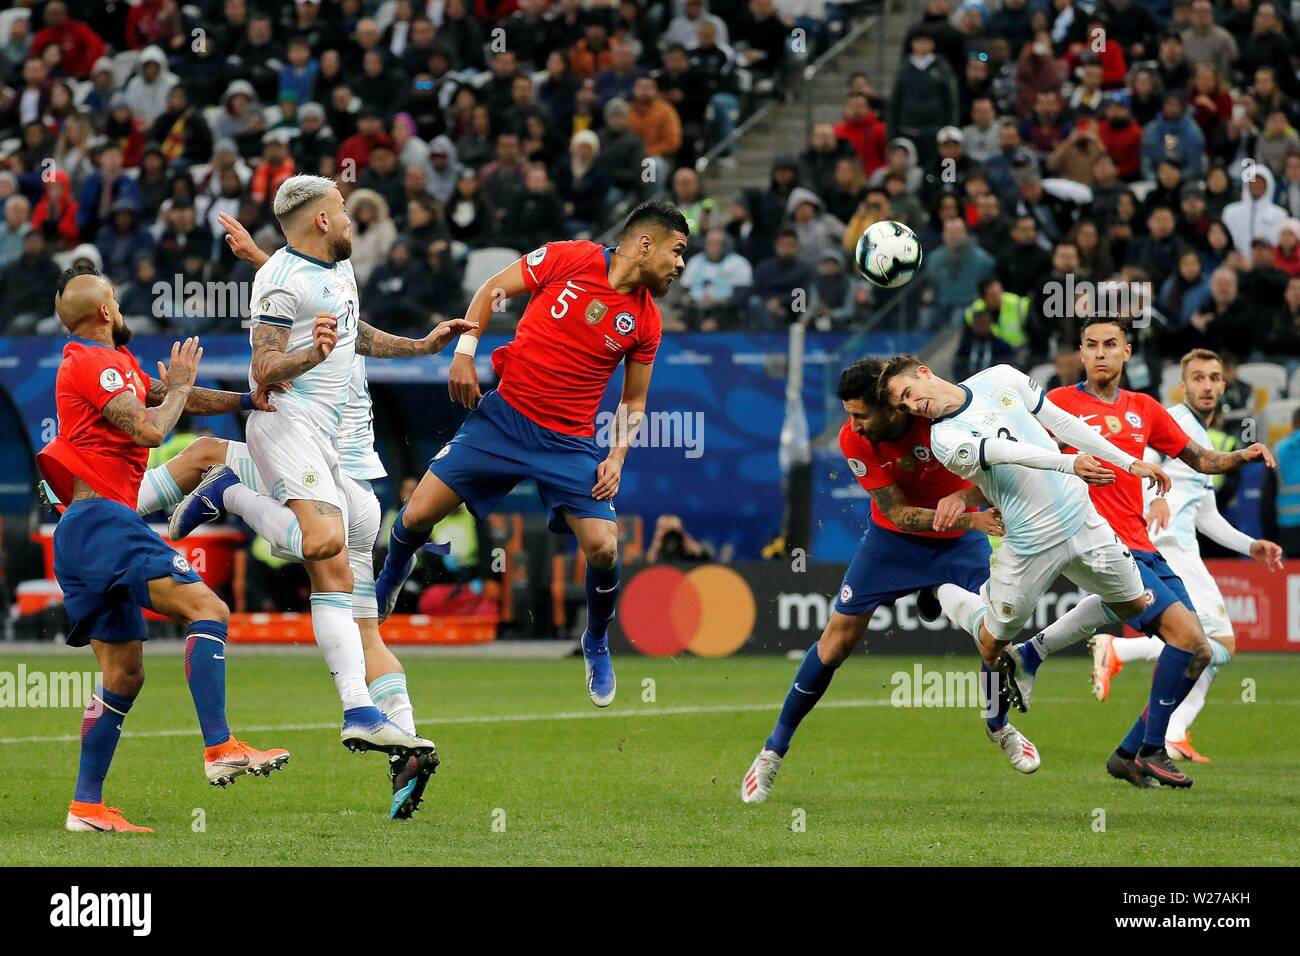 Sao Paulo, Brazil. 06th July, 2019. Chile's Paulo Diaz (3L) vies for the ball with Argentina's Tagliafico during the Copa America 2019 3rd place soccer match between Argentina and Chile, at Arena Corinthians Stadium in Sao Paulo, Brazil, 6 July 2019. Credit: Paulo Whitaker/EFE/Alamy Live News - Stock Image